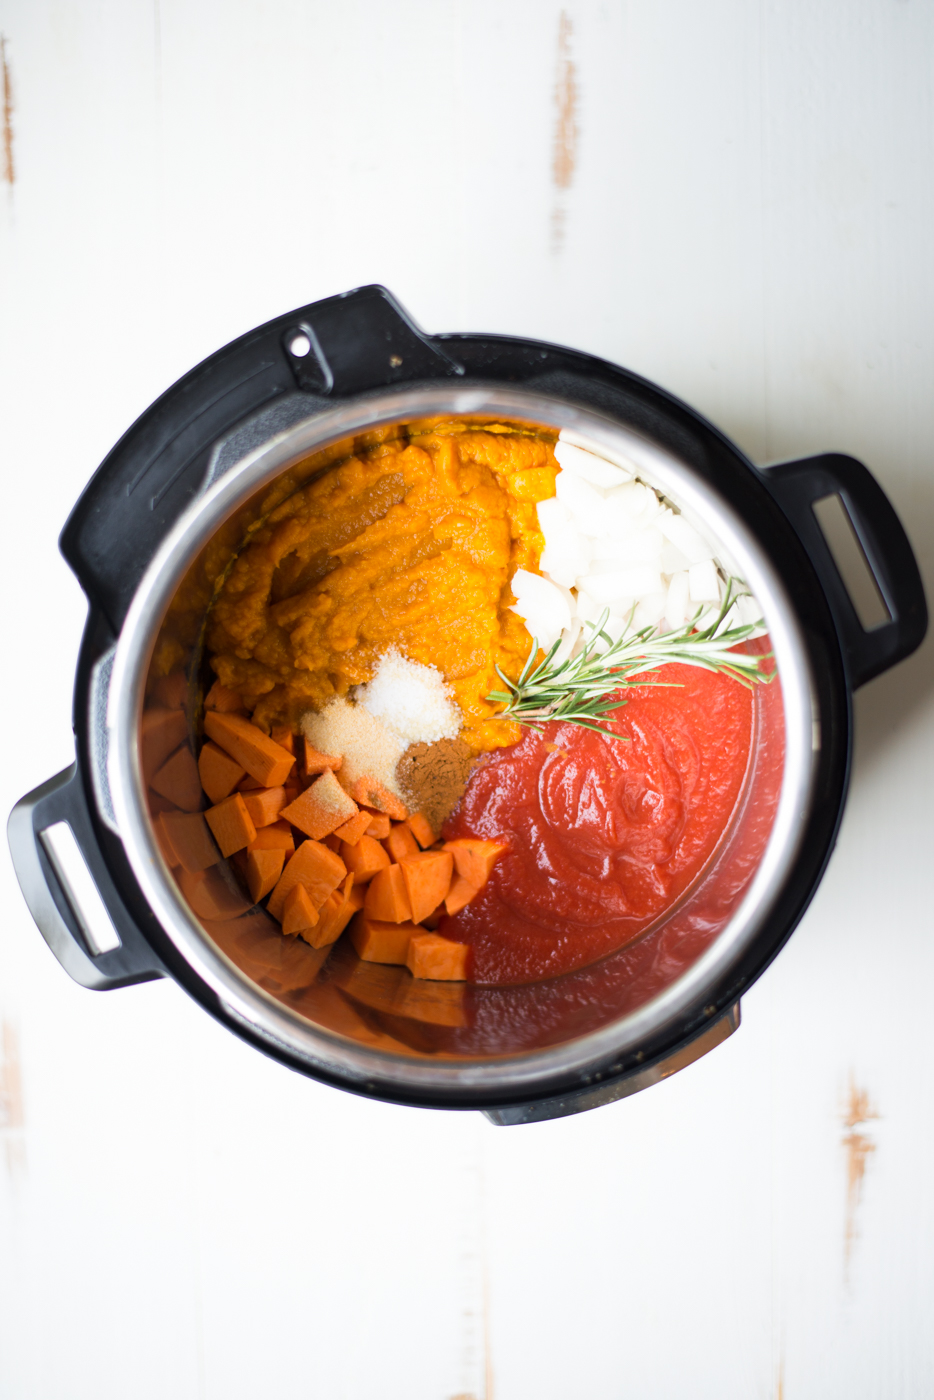 Instant Pot Creamy Pumpkin Tuscan Soup is insanely easy and totally delectable. This warming, nourishing fall recipe is gluten-free, dairy-free, paleo, and whole30. #realfoodwholeliferecipe #healthyrecipe #paleo #paleorecipe #whole30 #whole30recipe #pumpkin #pumpkinrecipe #fall #fallrecipe #cleaneating #glutenfree #dairyfree #glutenfreerecipe #dairyfreerecipe #instantpot #instantpotrecipe #vegan #veganrecipe